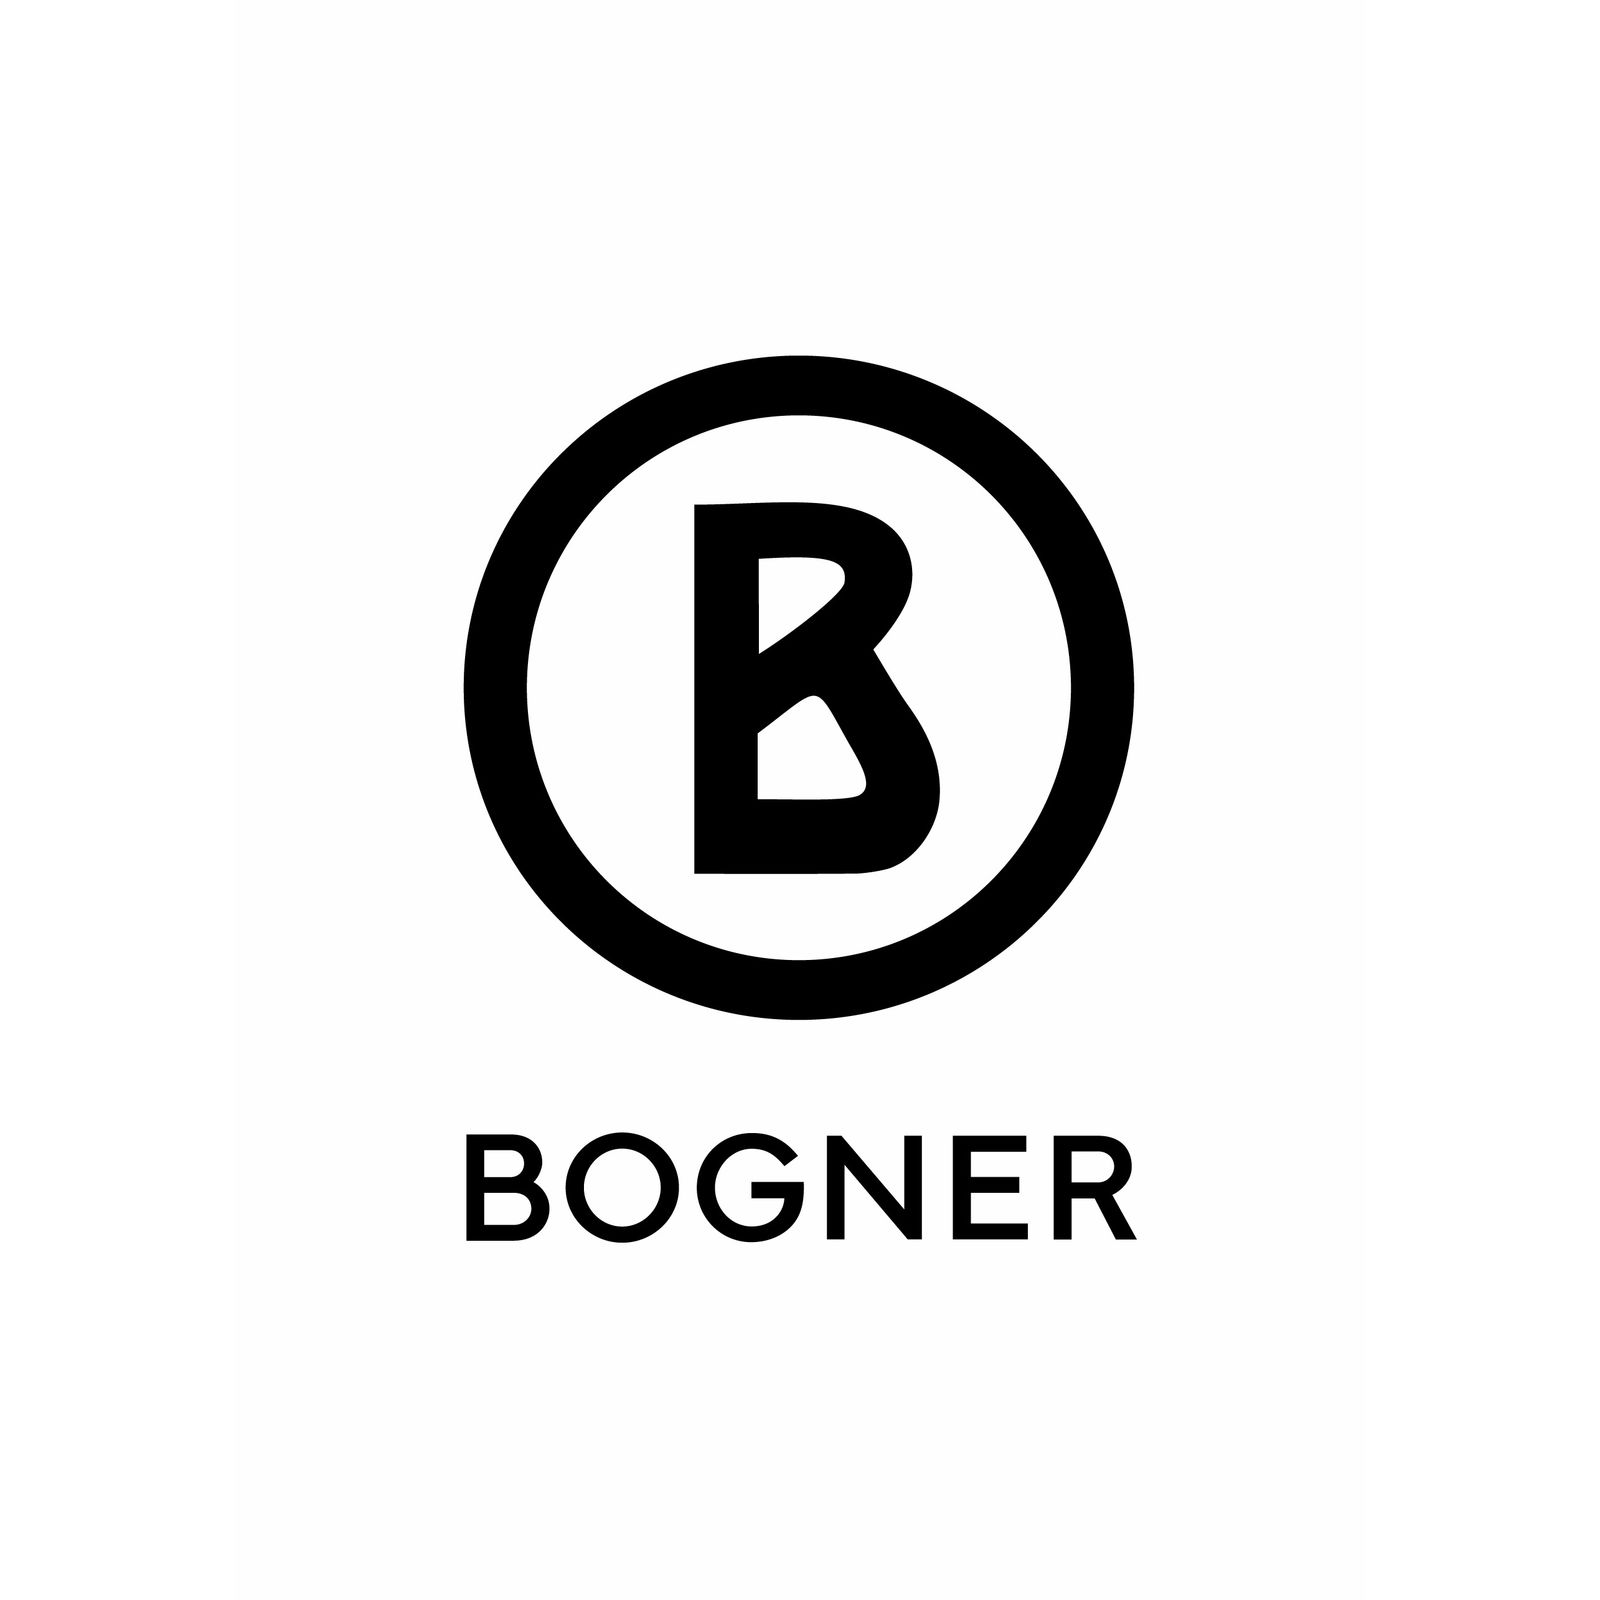 BOGNER Leather (Bild 1)